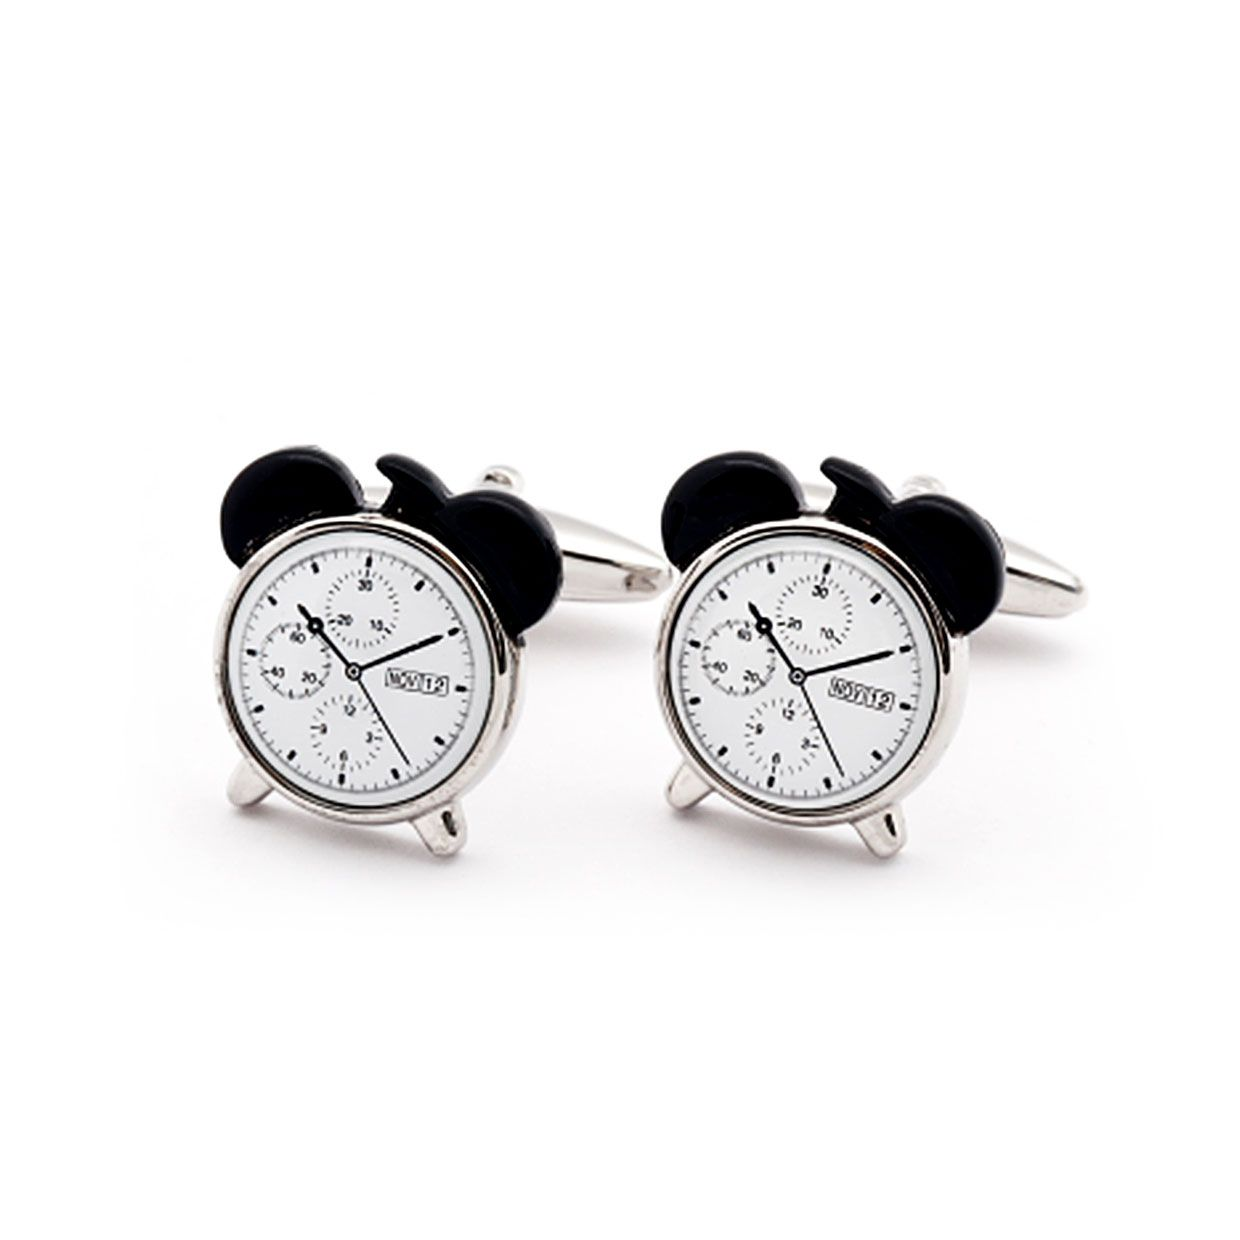 Mark And Fun Clock Cufflinks now featured on Fab. At a time and over time!